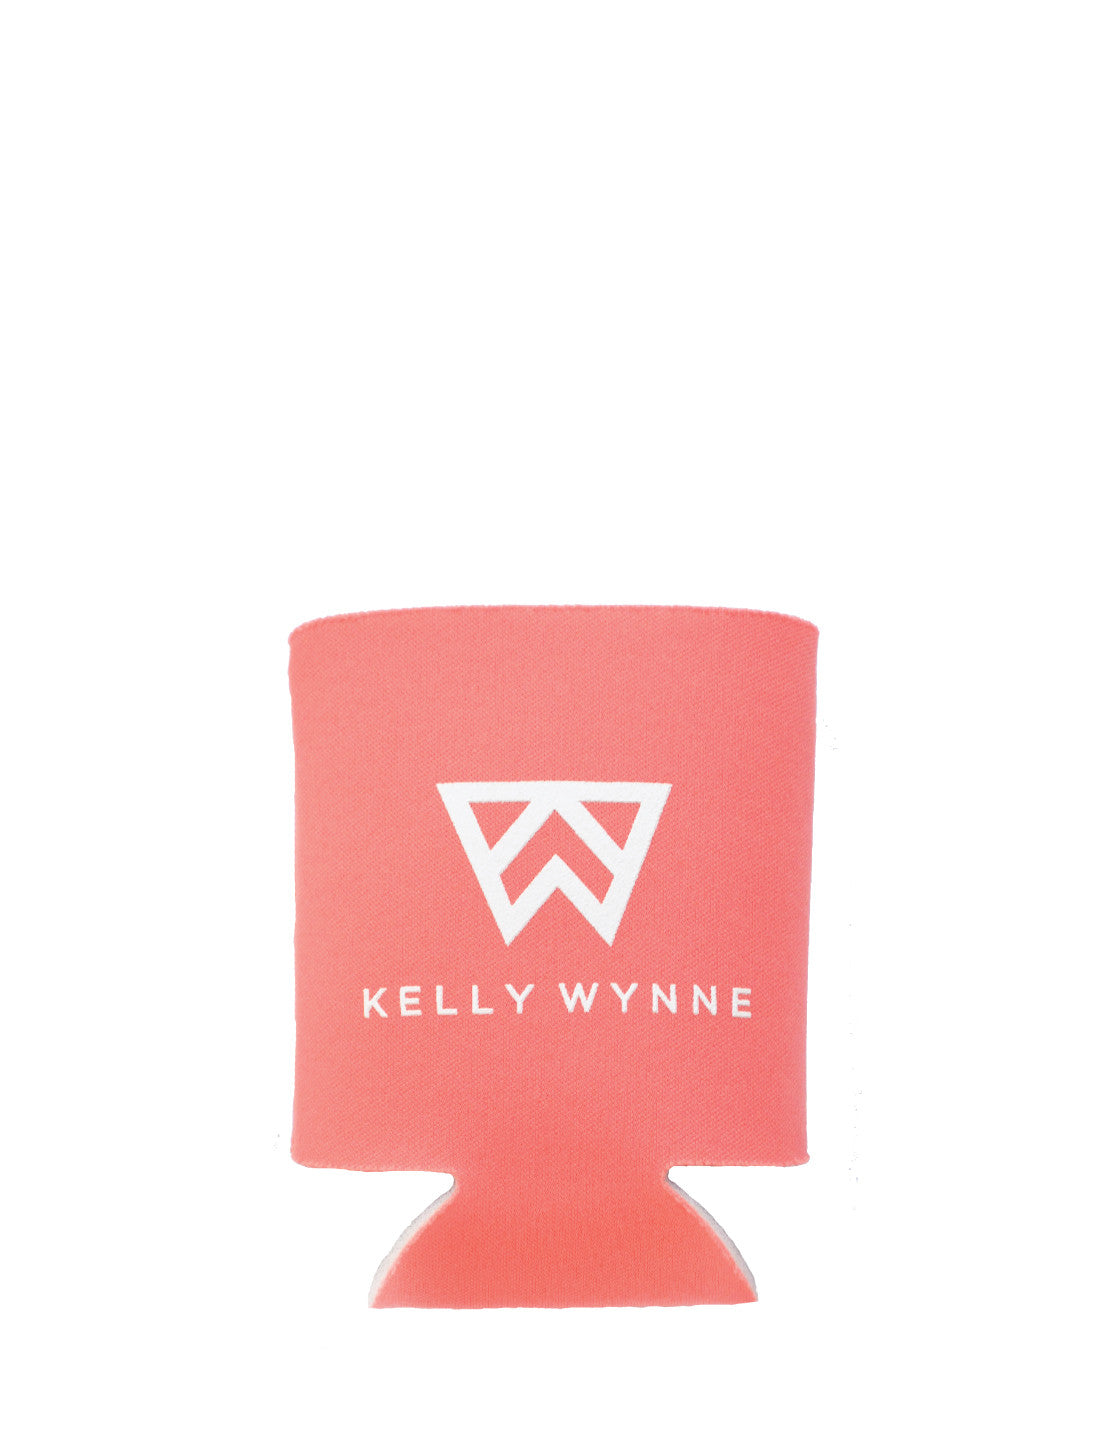 Boozie Koozie in Coral - Lifestyle